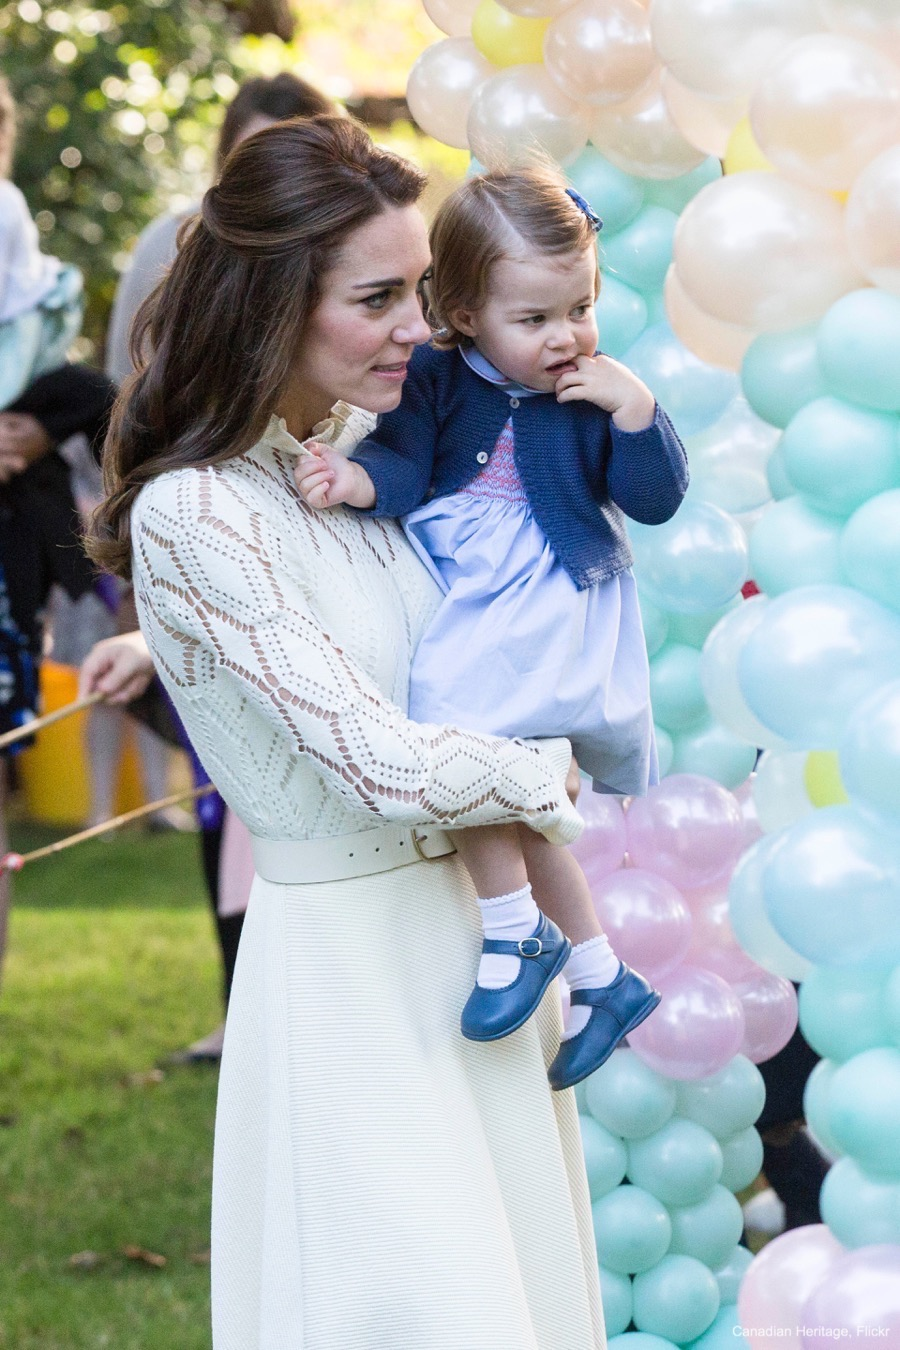 William, Kate, Charlotte and George attend a Children's Garden Party in Canada